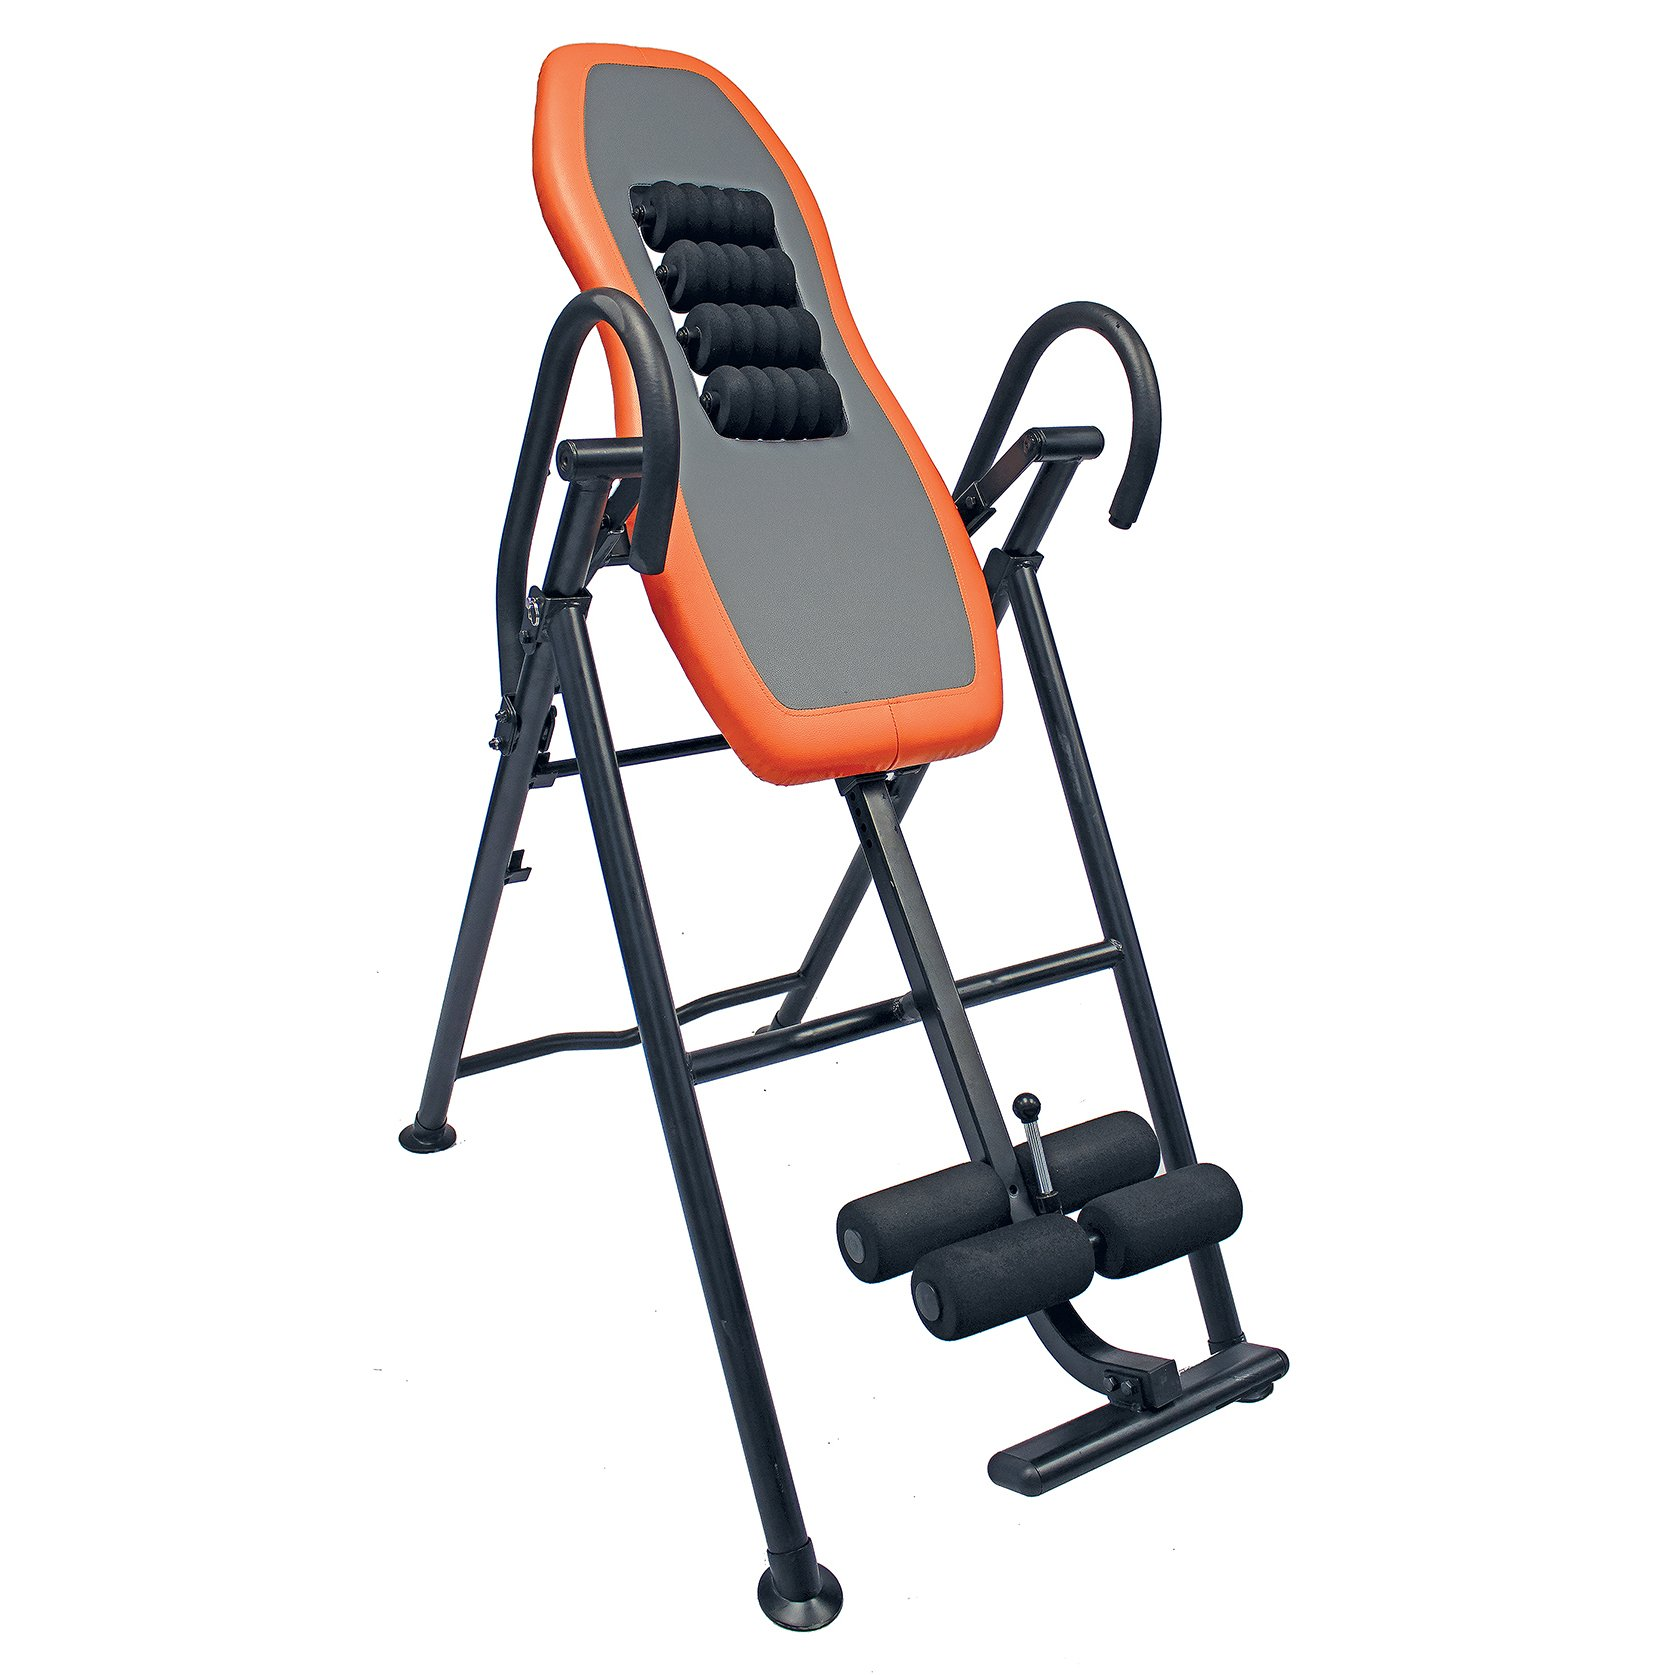 Health Gear ITR2.5 Patented Roller Massage Inversion Table